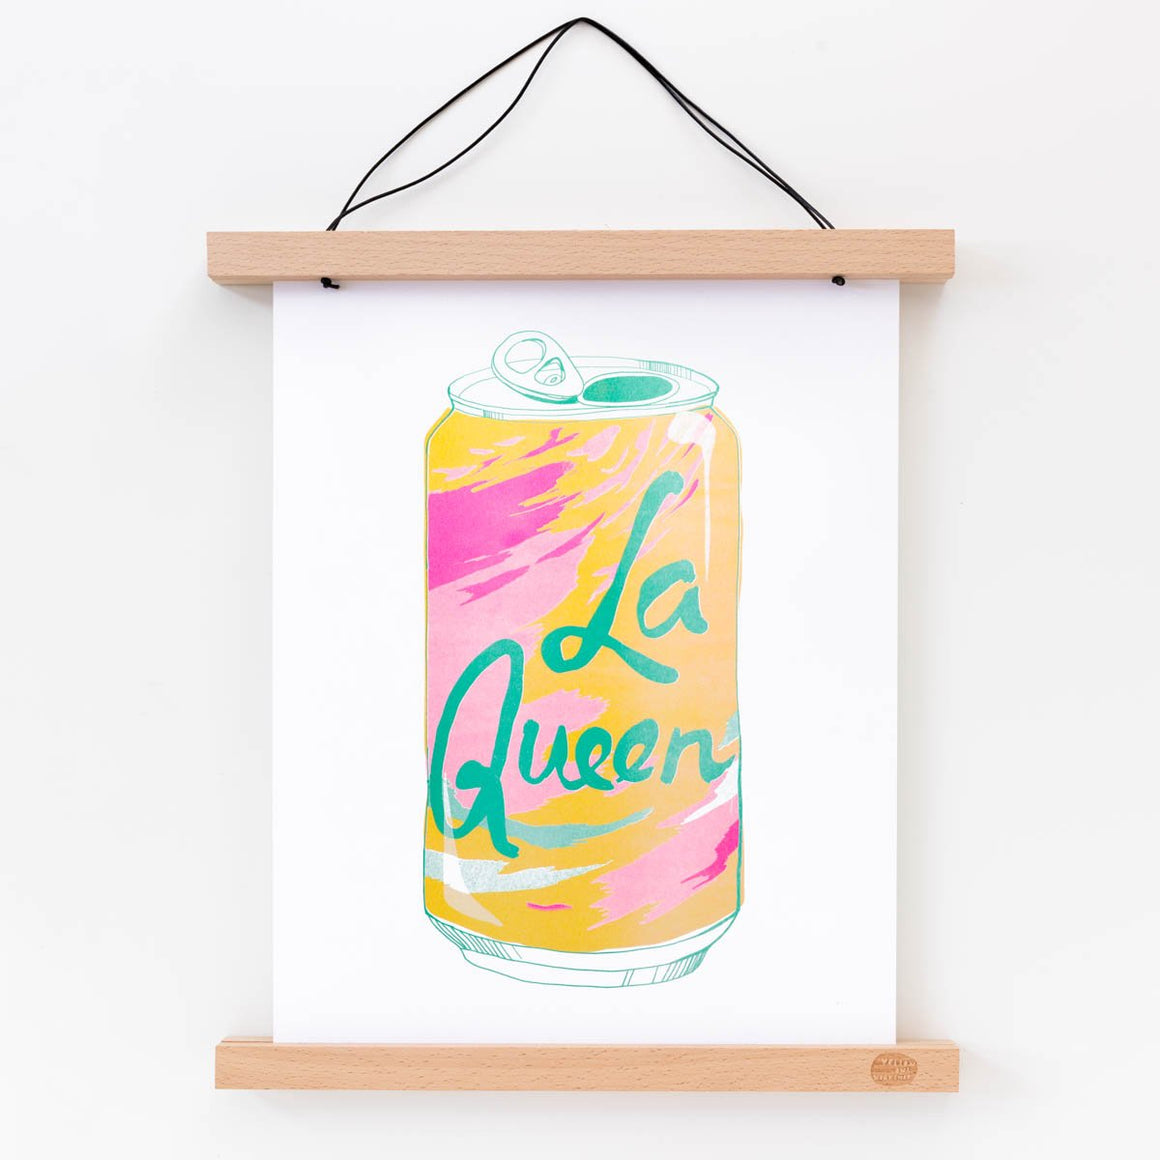 Yellow Owl Workshop: La Queen - Risograph Print